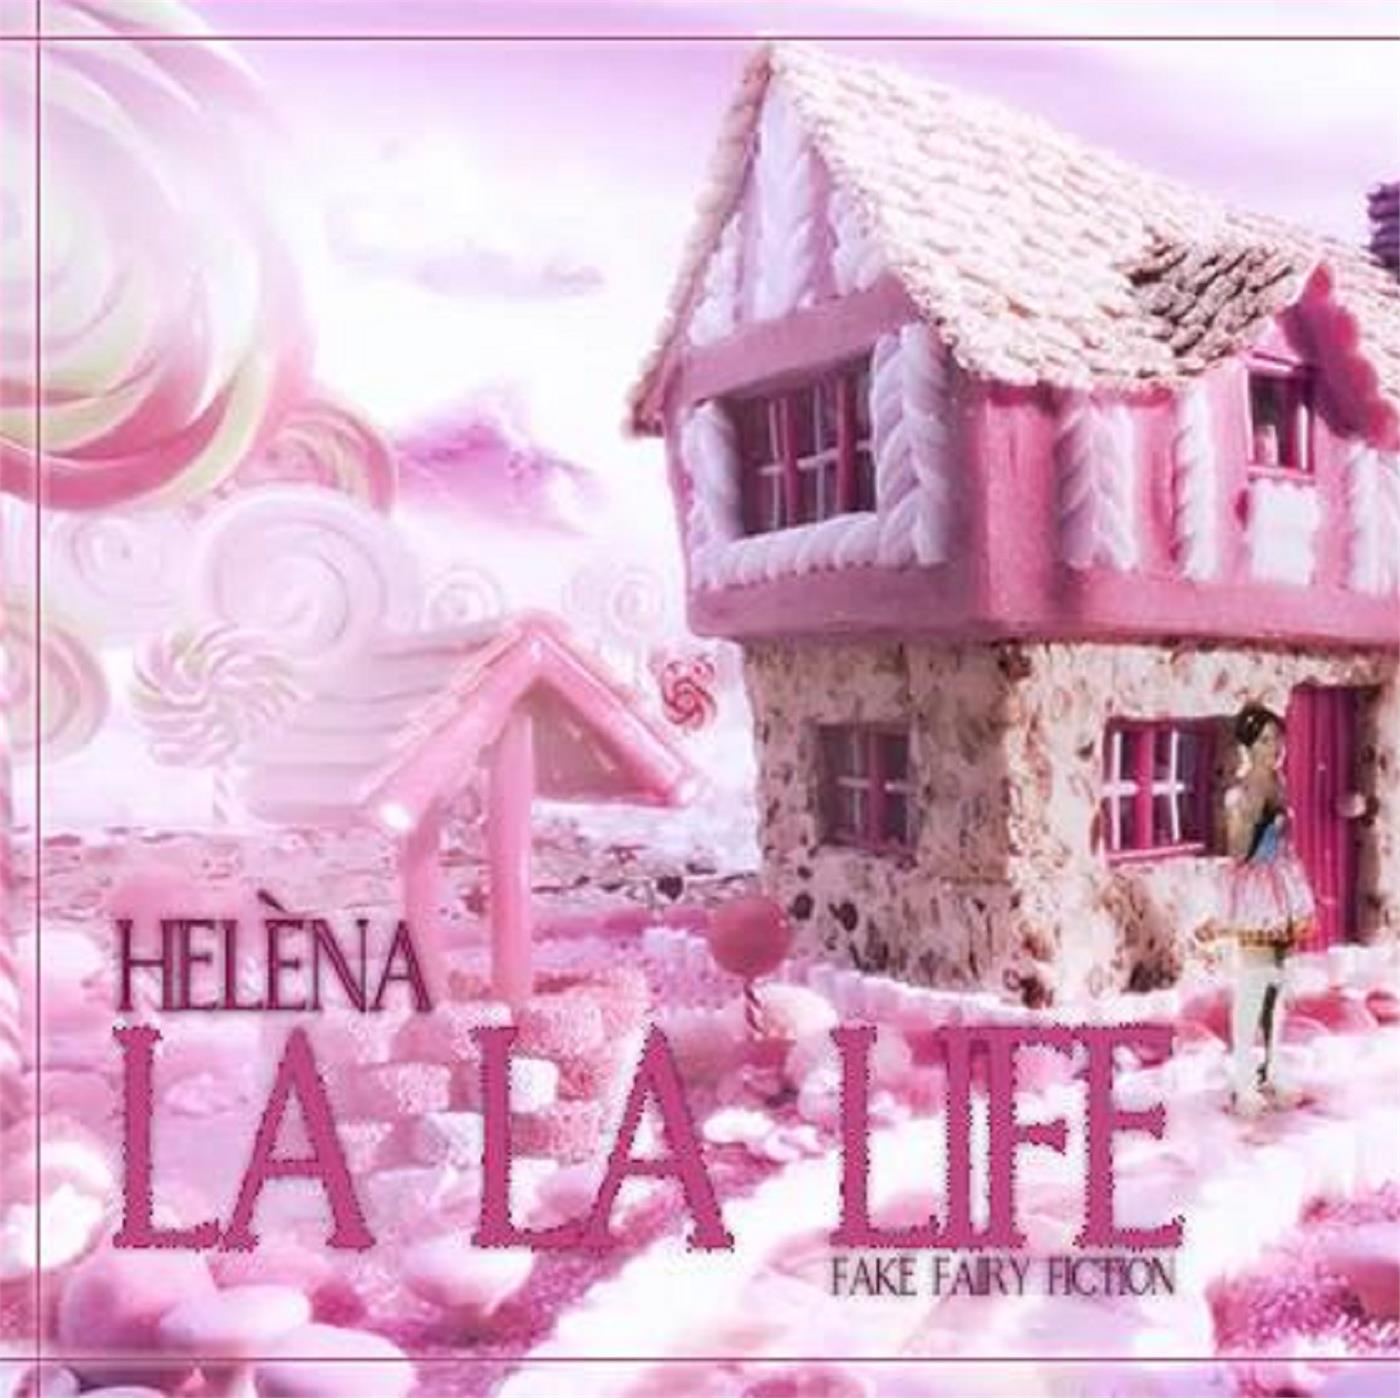 La La Life (Fake Fairy Fiction)